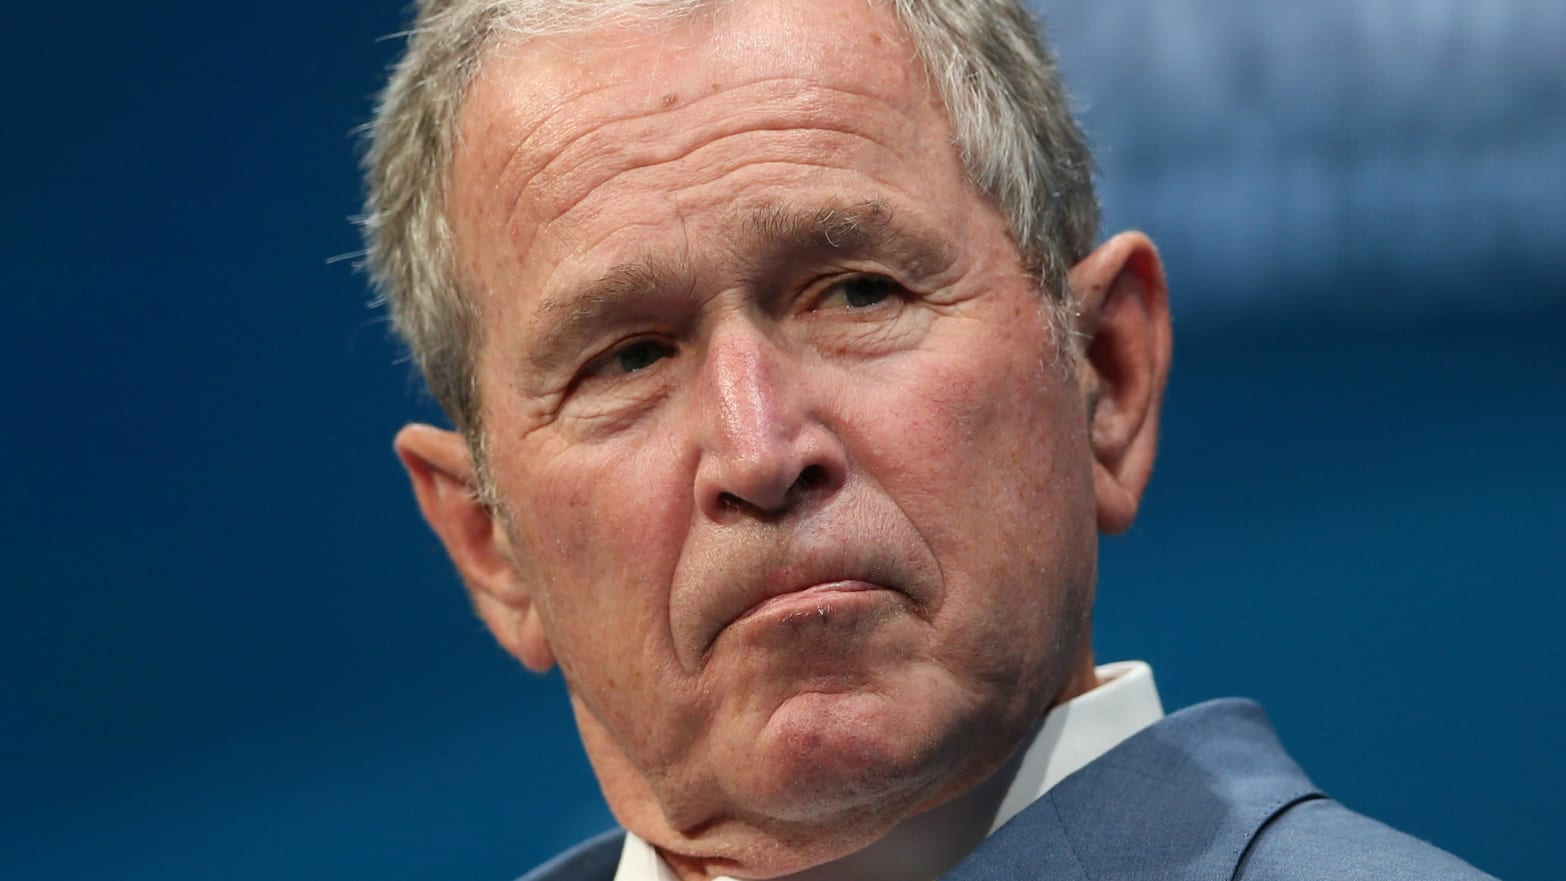 George W. Bush: Russia Definitely Meddled in the 2016 Election